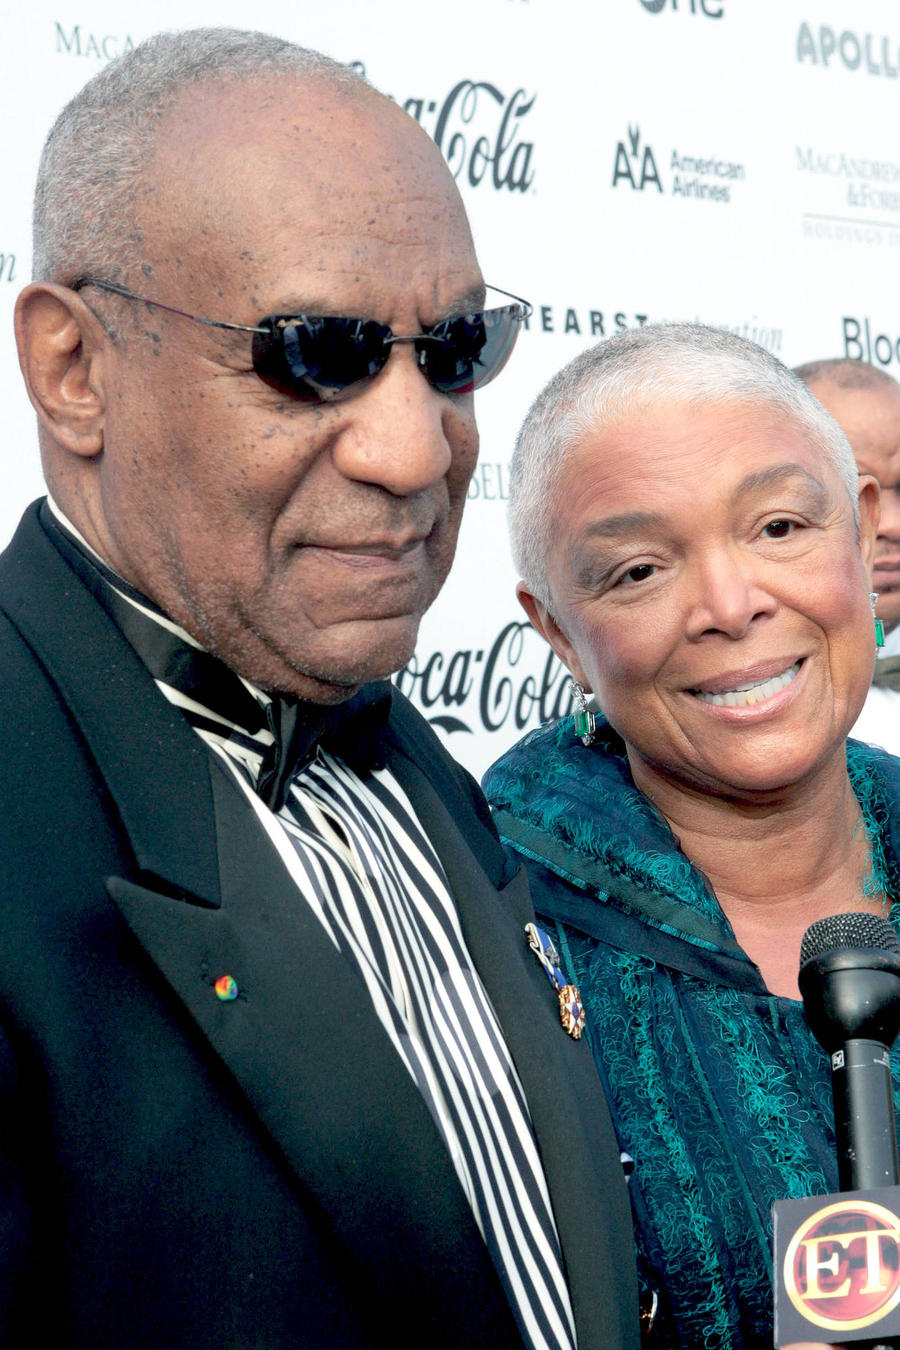 Camille Cosby Files Emergency Motion To Postpone Deposition